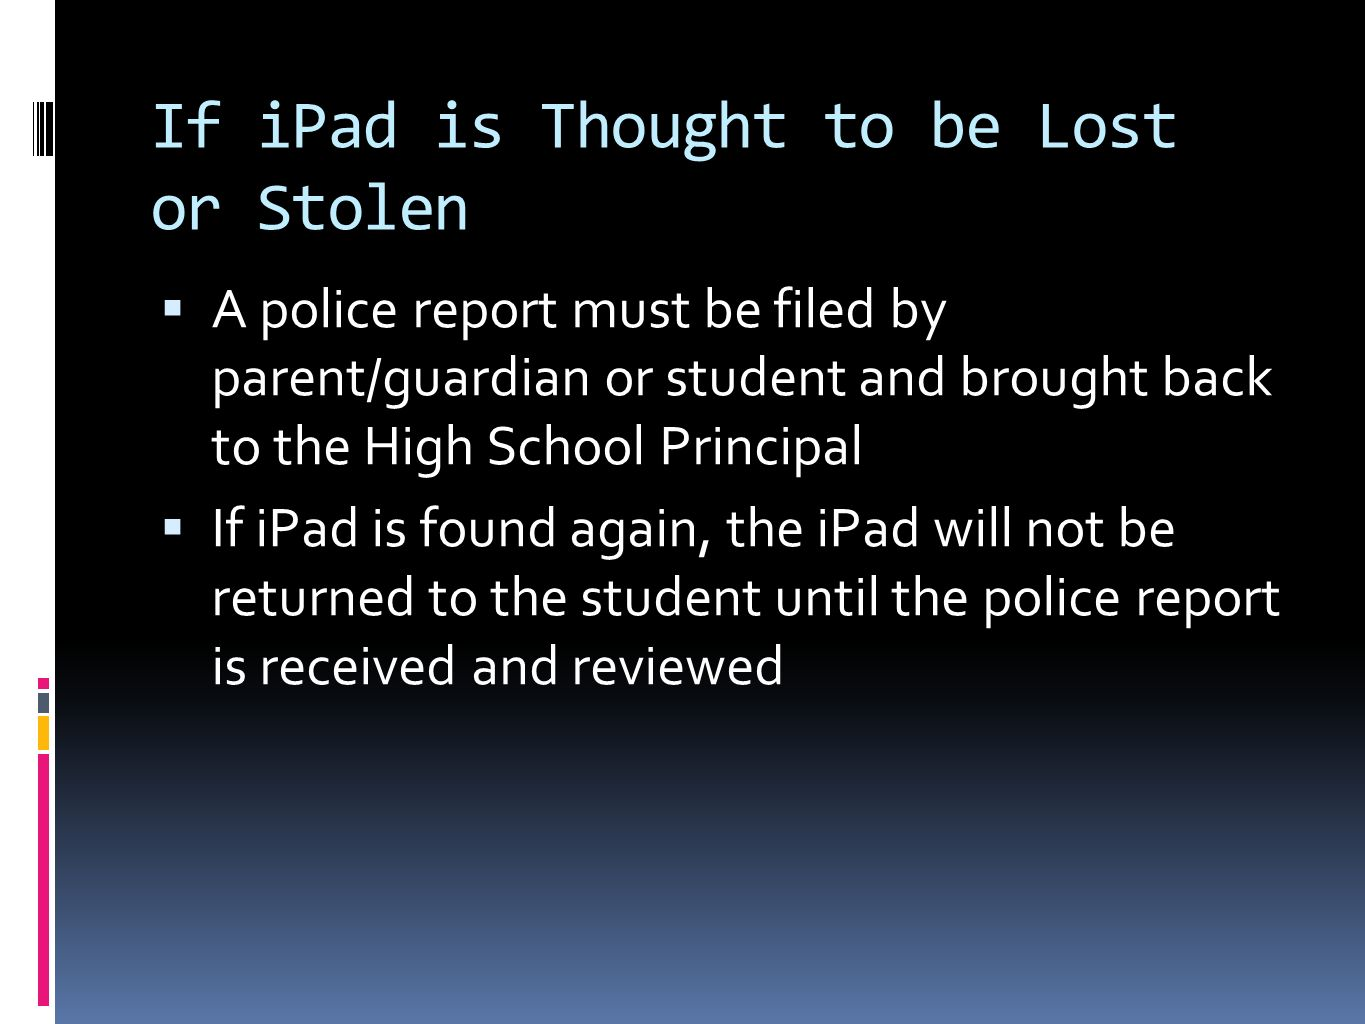 If iPad is Thought to be Lost or Stolen A police report must be filed by parent/guardian or student and brought back to the High School Principal If iPad is found again, the iPad will not be returned to the student until the police report is received and reviewed